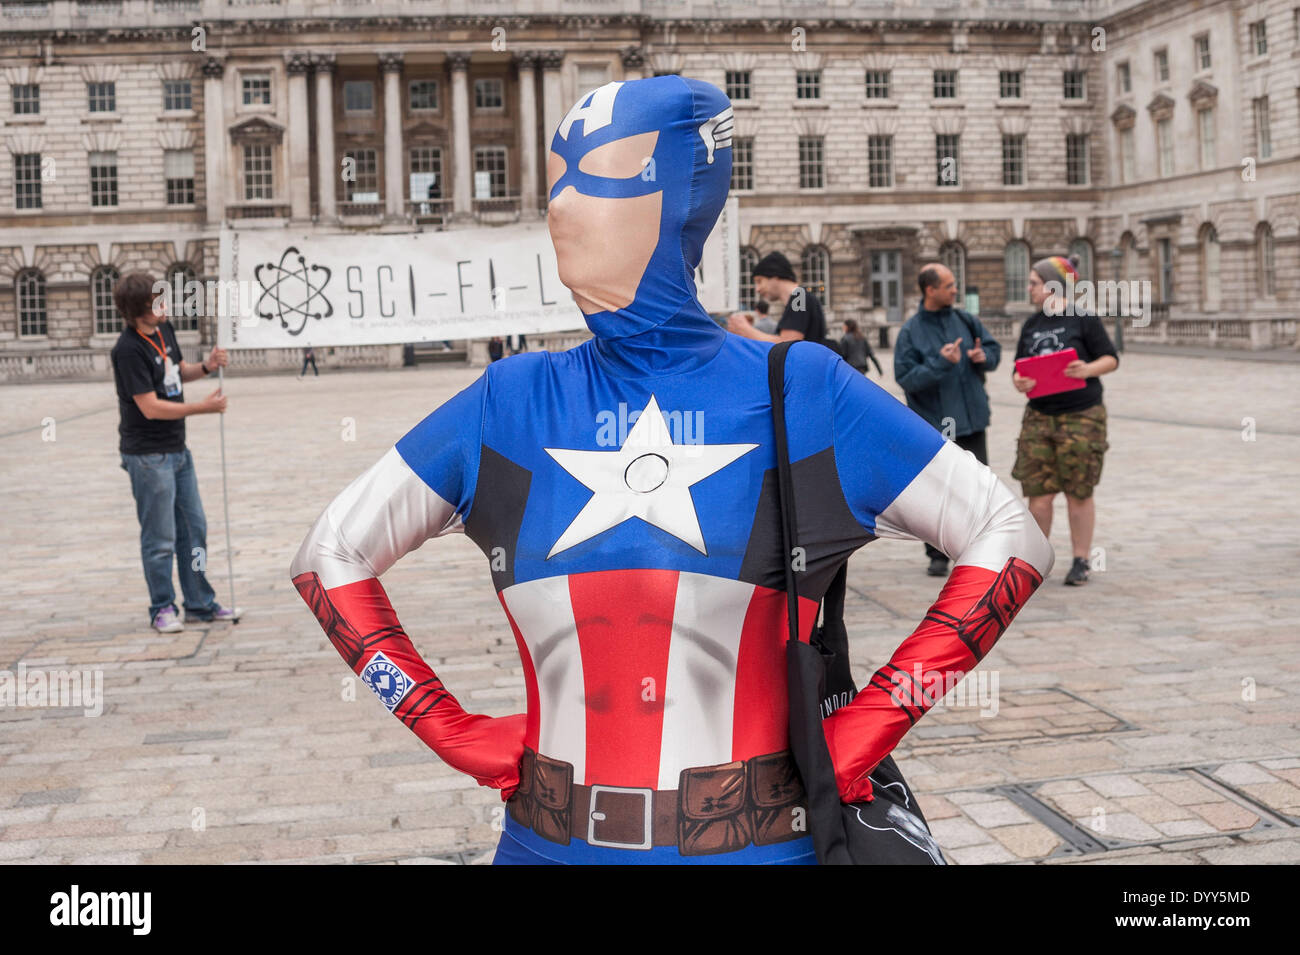 London, 27 April 2014 - people dressed as their favourite sci-fi characters take part in the Sci-Fi London 2014 costume parade starting at Somerset House and finishing at the BFI on the South Bank.  A woman dressed as Captain America.      Credit:  Stephen Chung/Alamy Live News - Stock Image